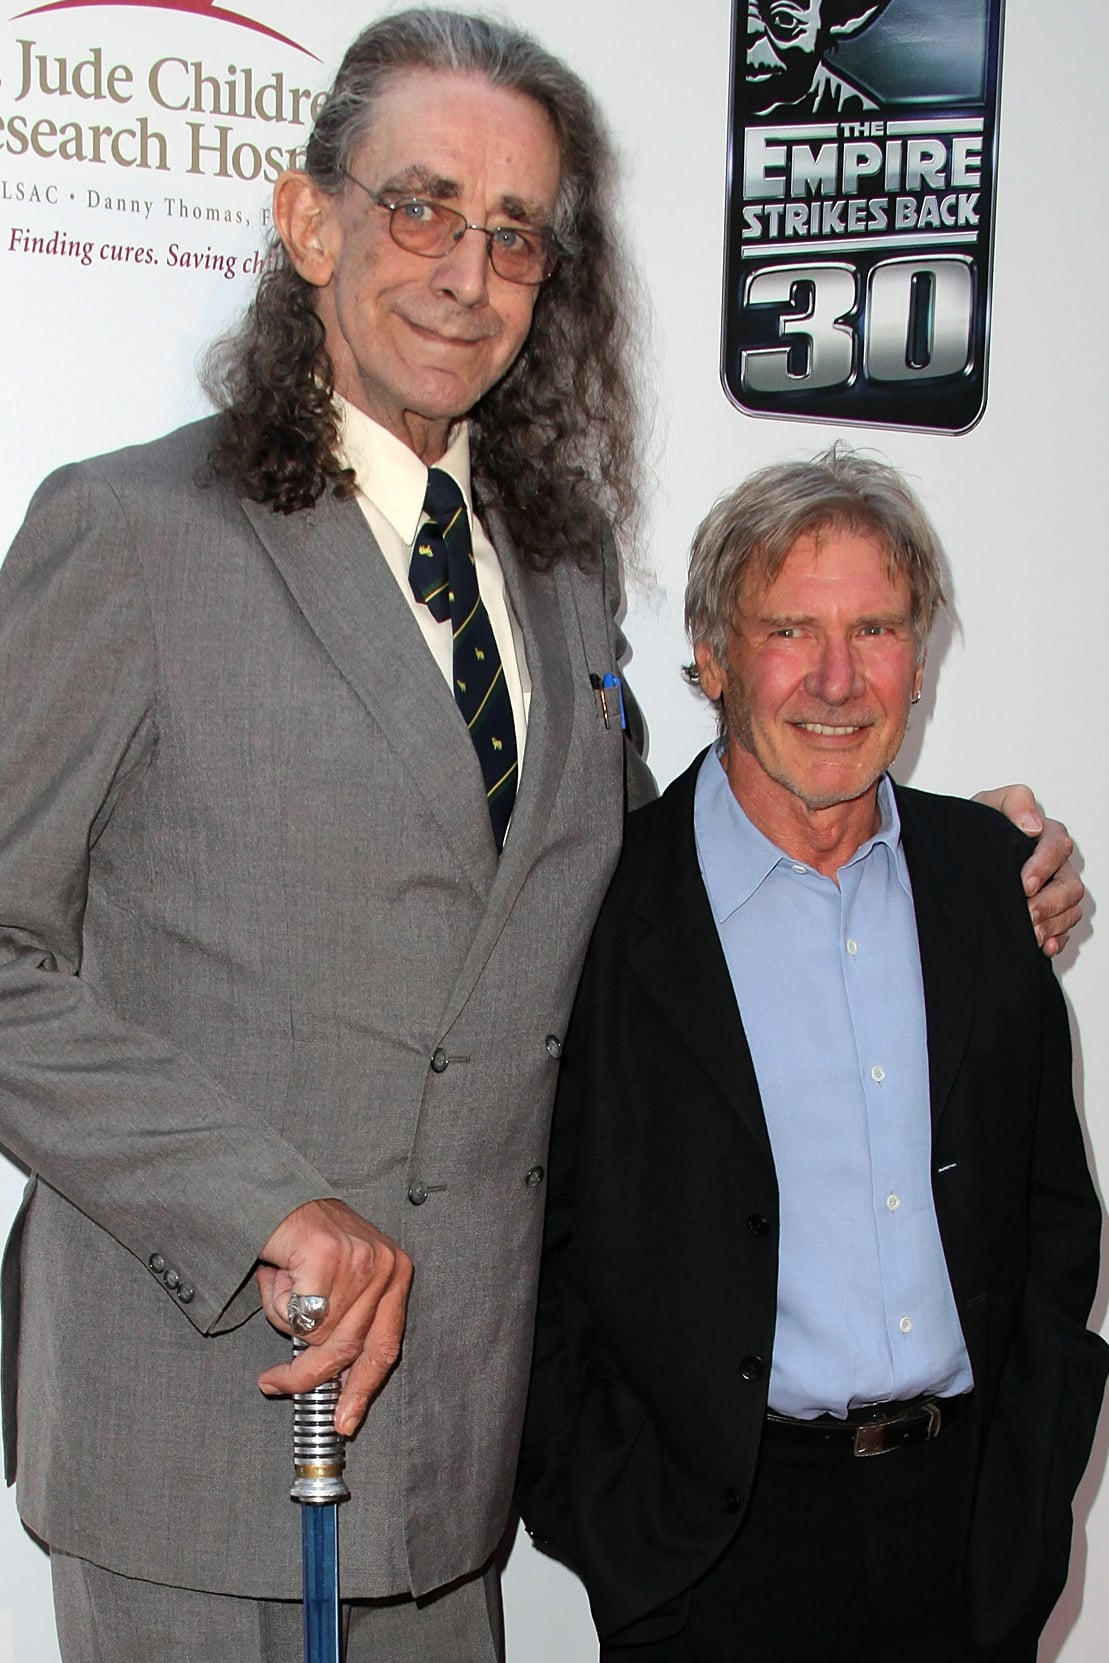 Original Chewbacca Peter Mayhew joined Star Wars: Episode VII, reprising his role from the original franchise.